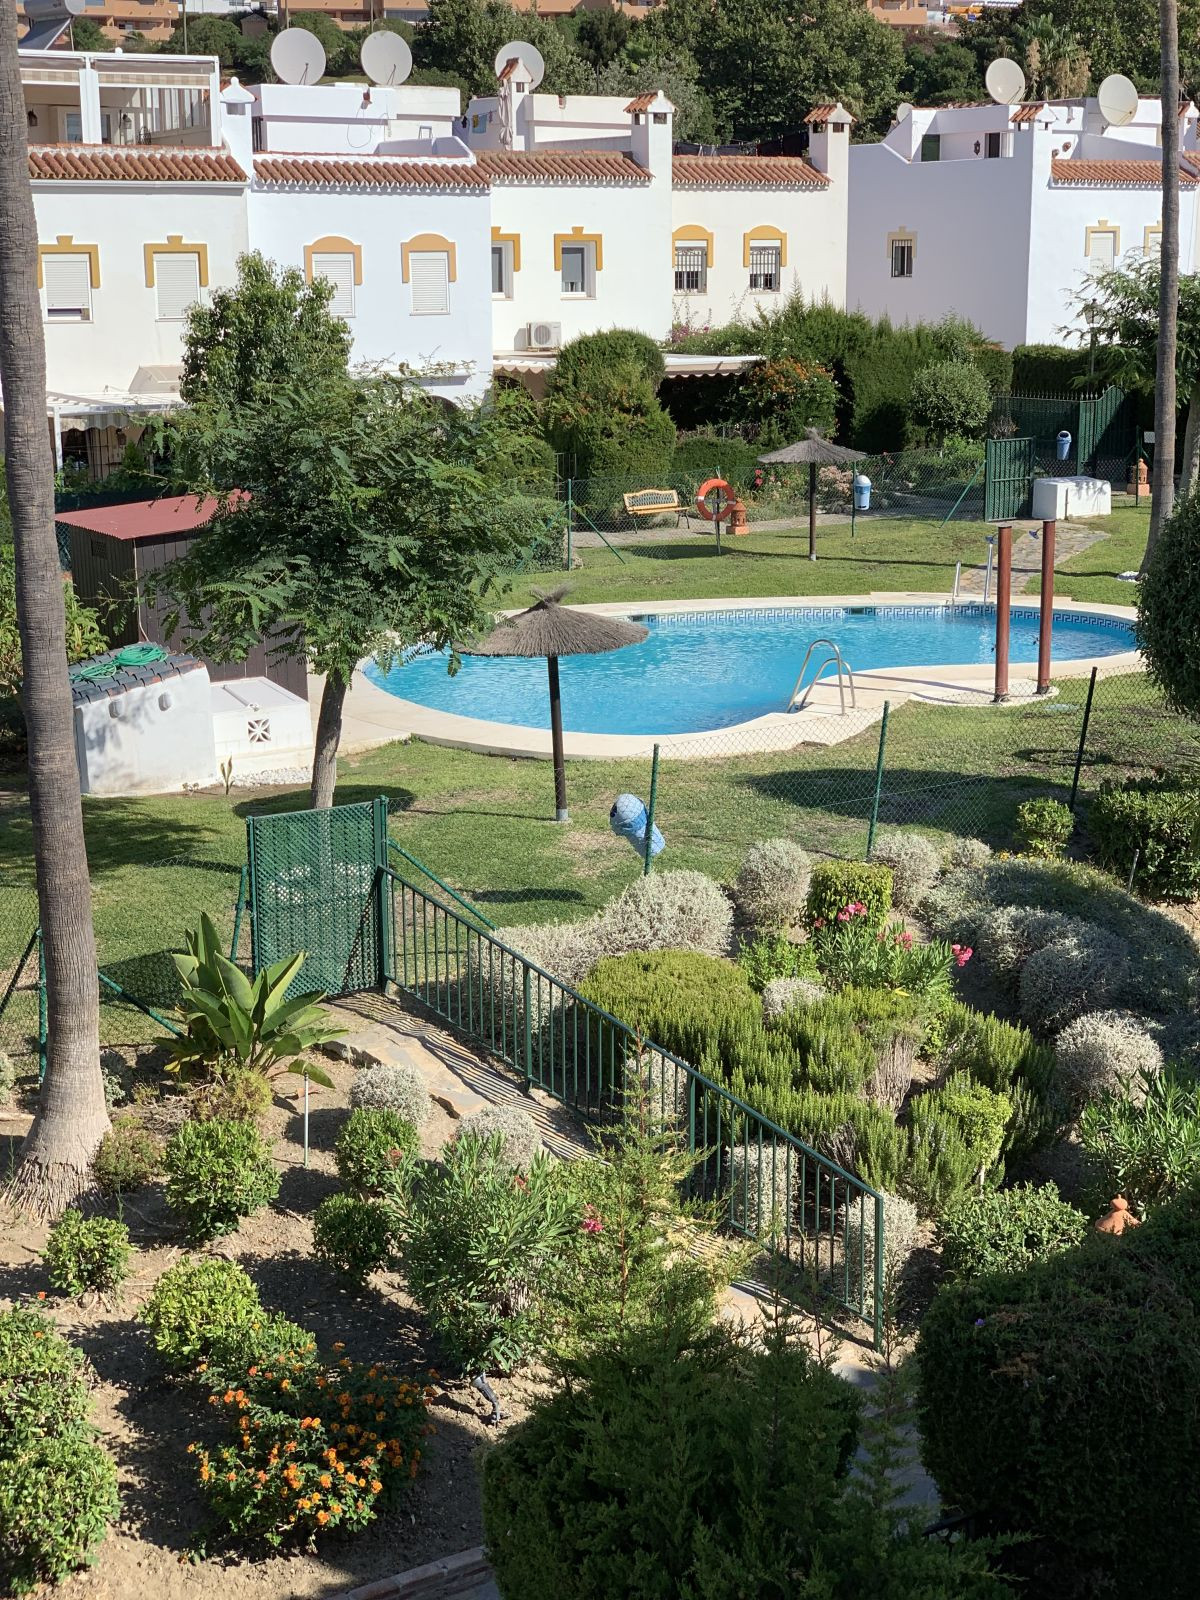 Excellent townhouse located just 250 meters from the beach, 10 min. by car from the center of Estepo,Spain